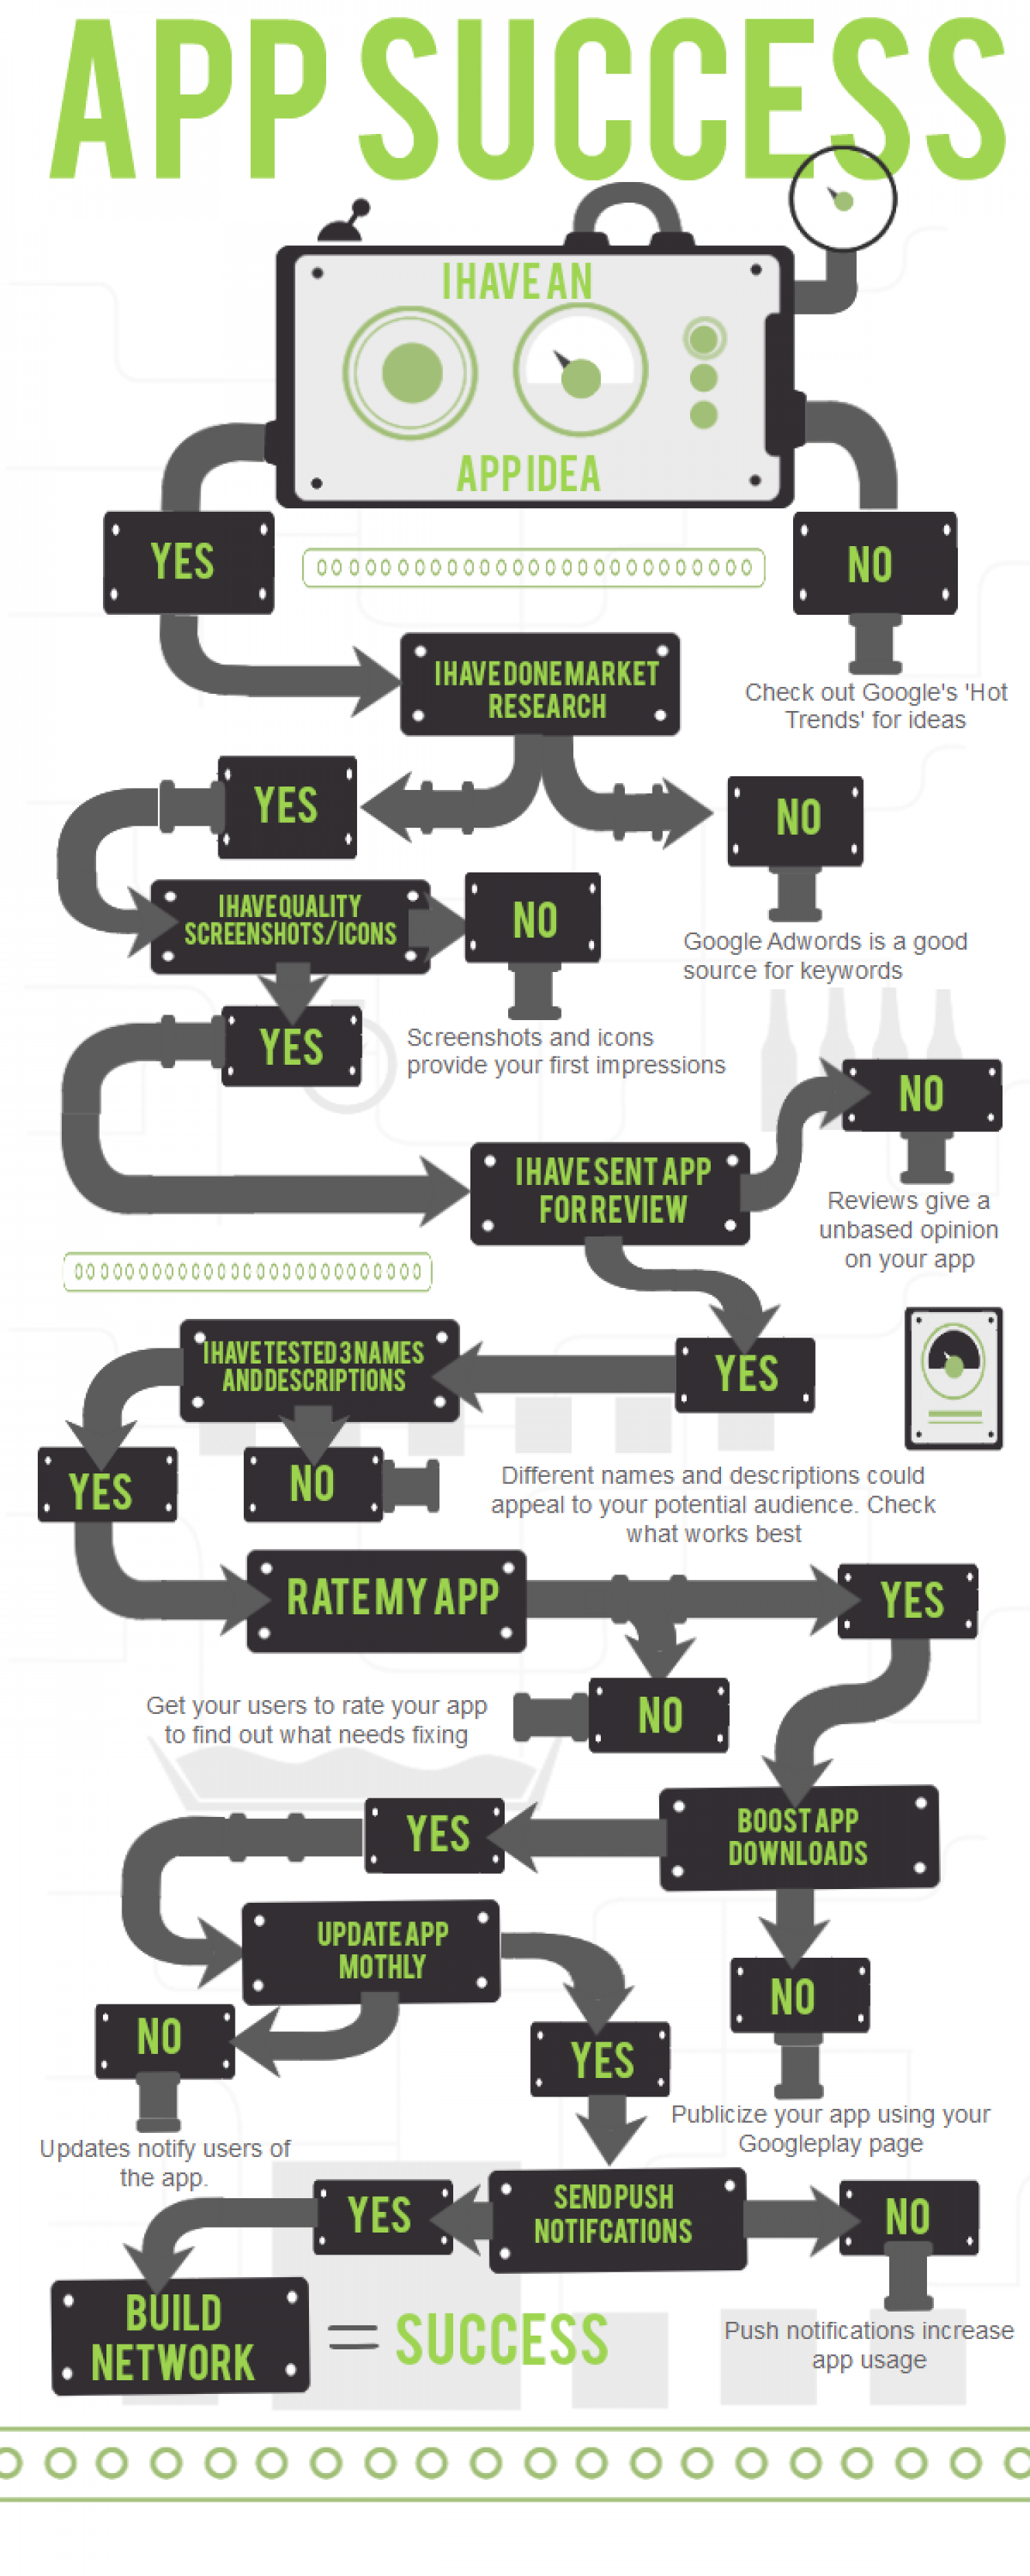 App Success Infographic